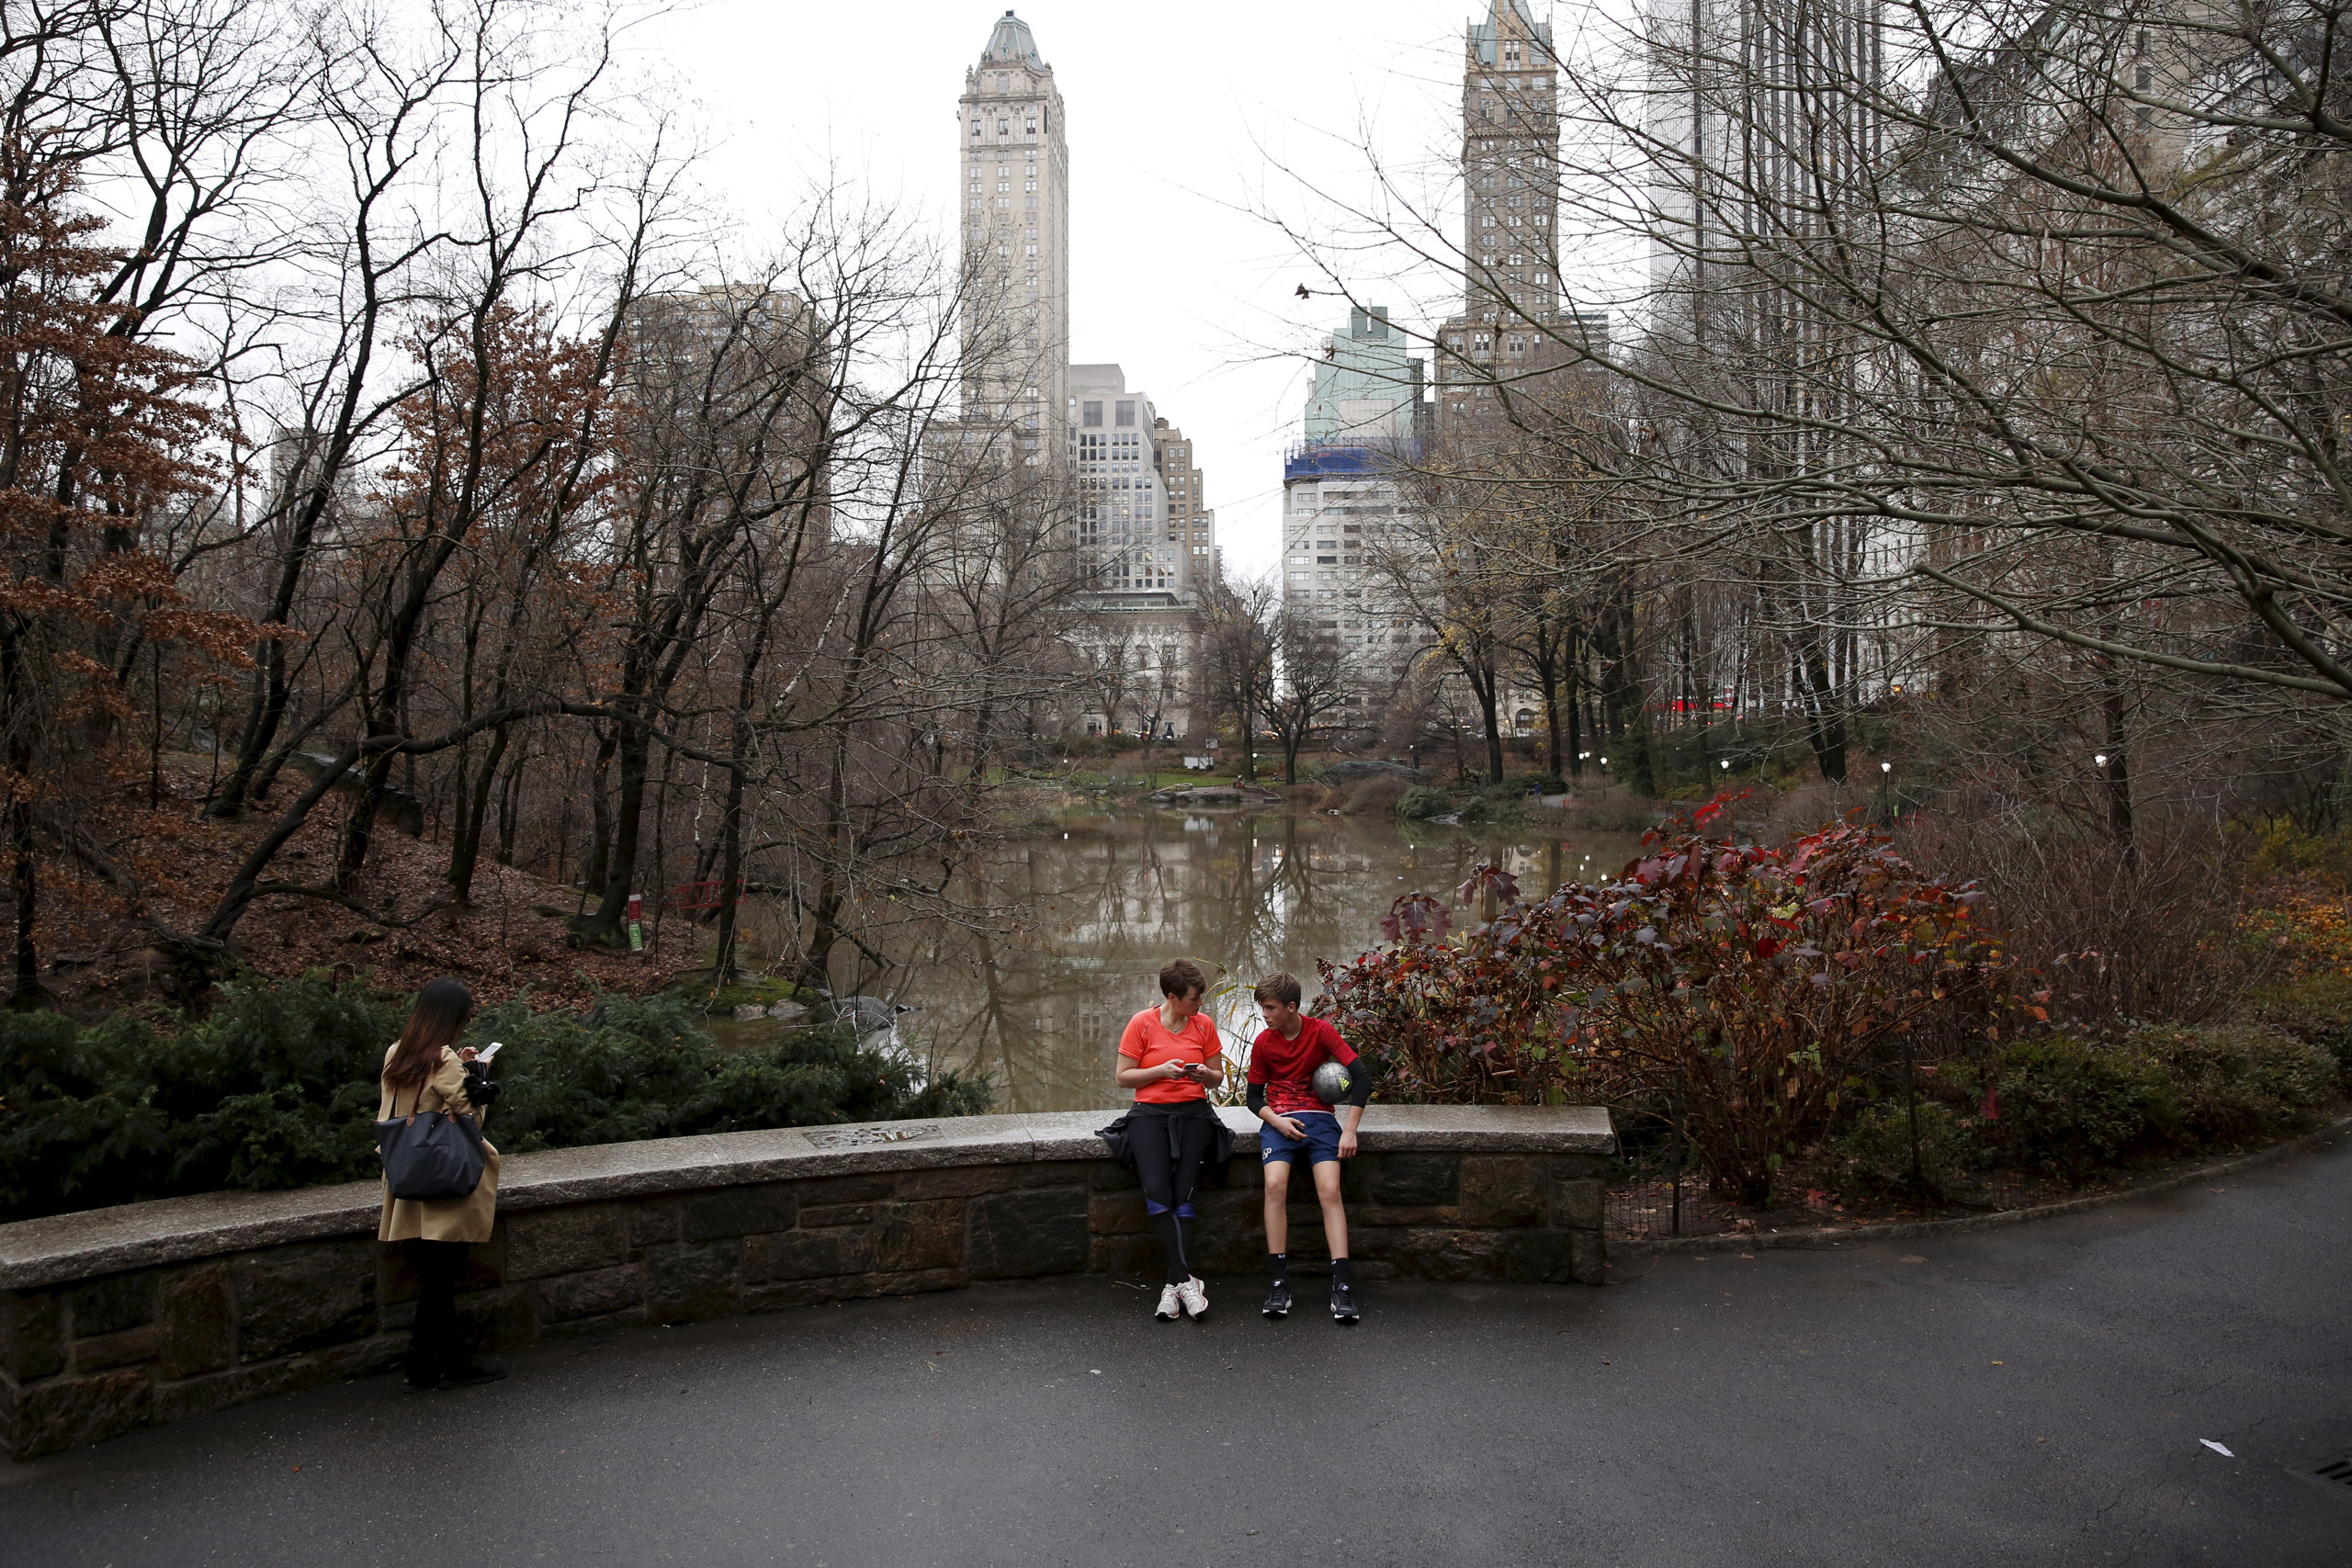 People sit to rest in Central Park during an unseasonably warm day in New York on Dec.24, 2015.